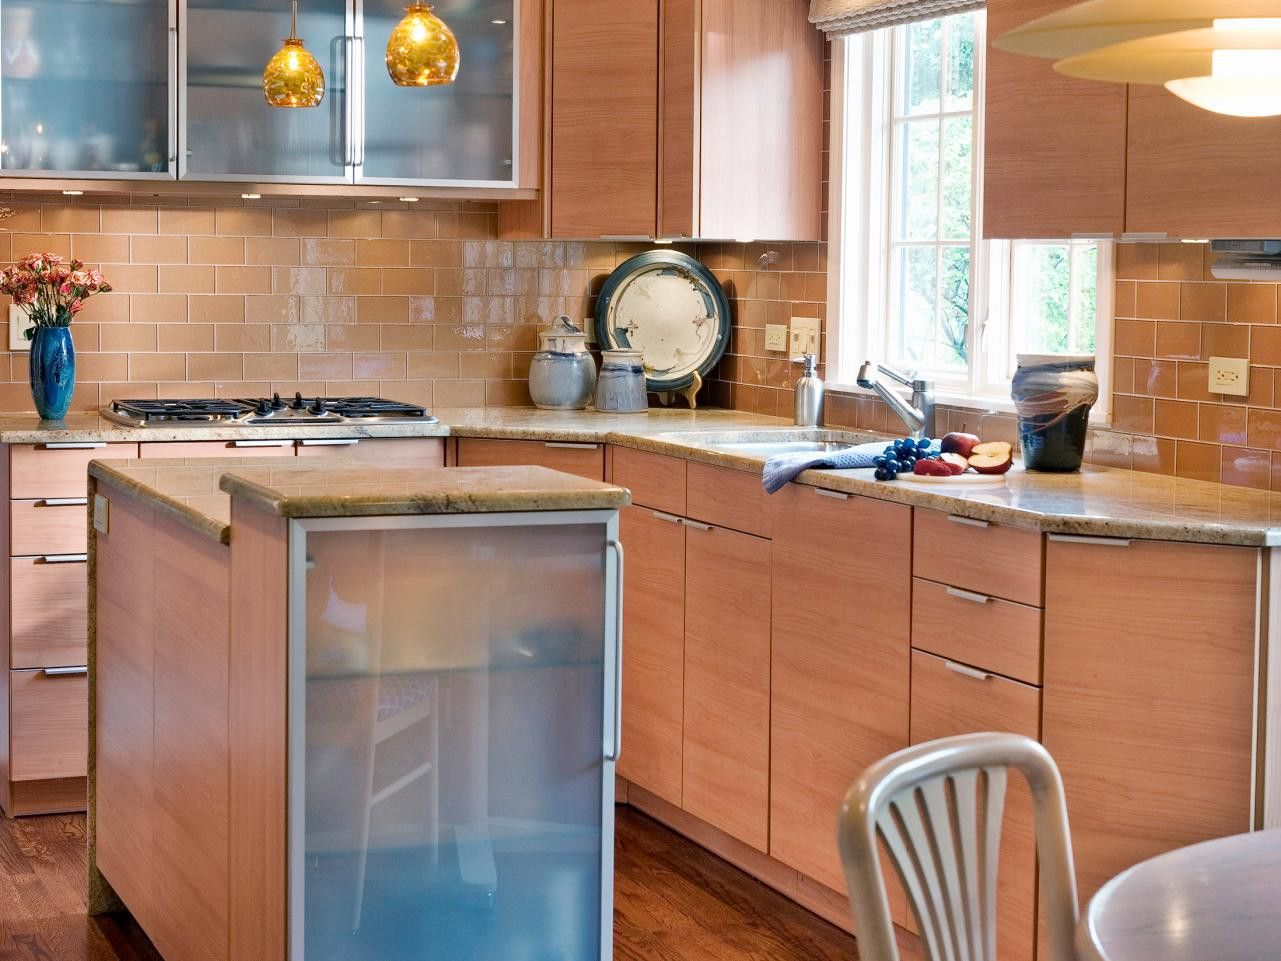 Best Kitchen Gallery: 70 Why Are Cabi S So Expensive Kitchen Counter Top Ideas Check of Why Are Kitchen Cabinets So Expensive on rachelxblog.com